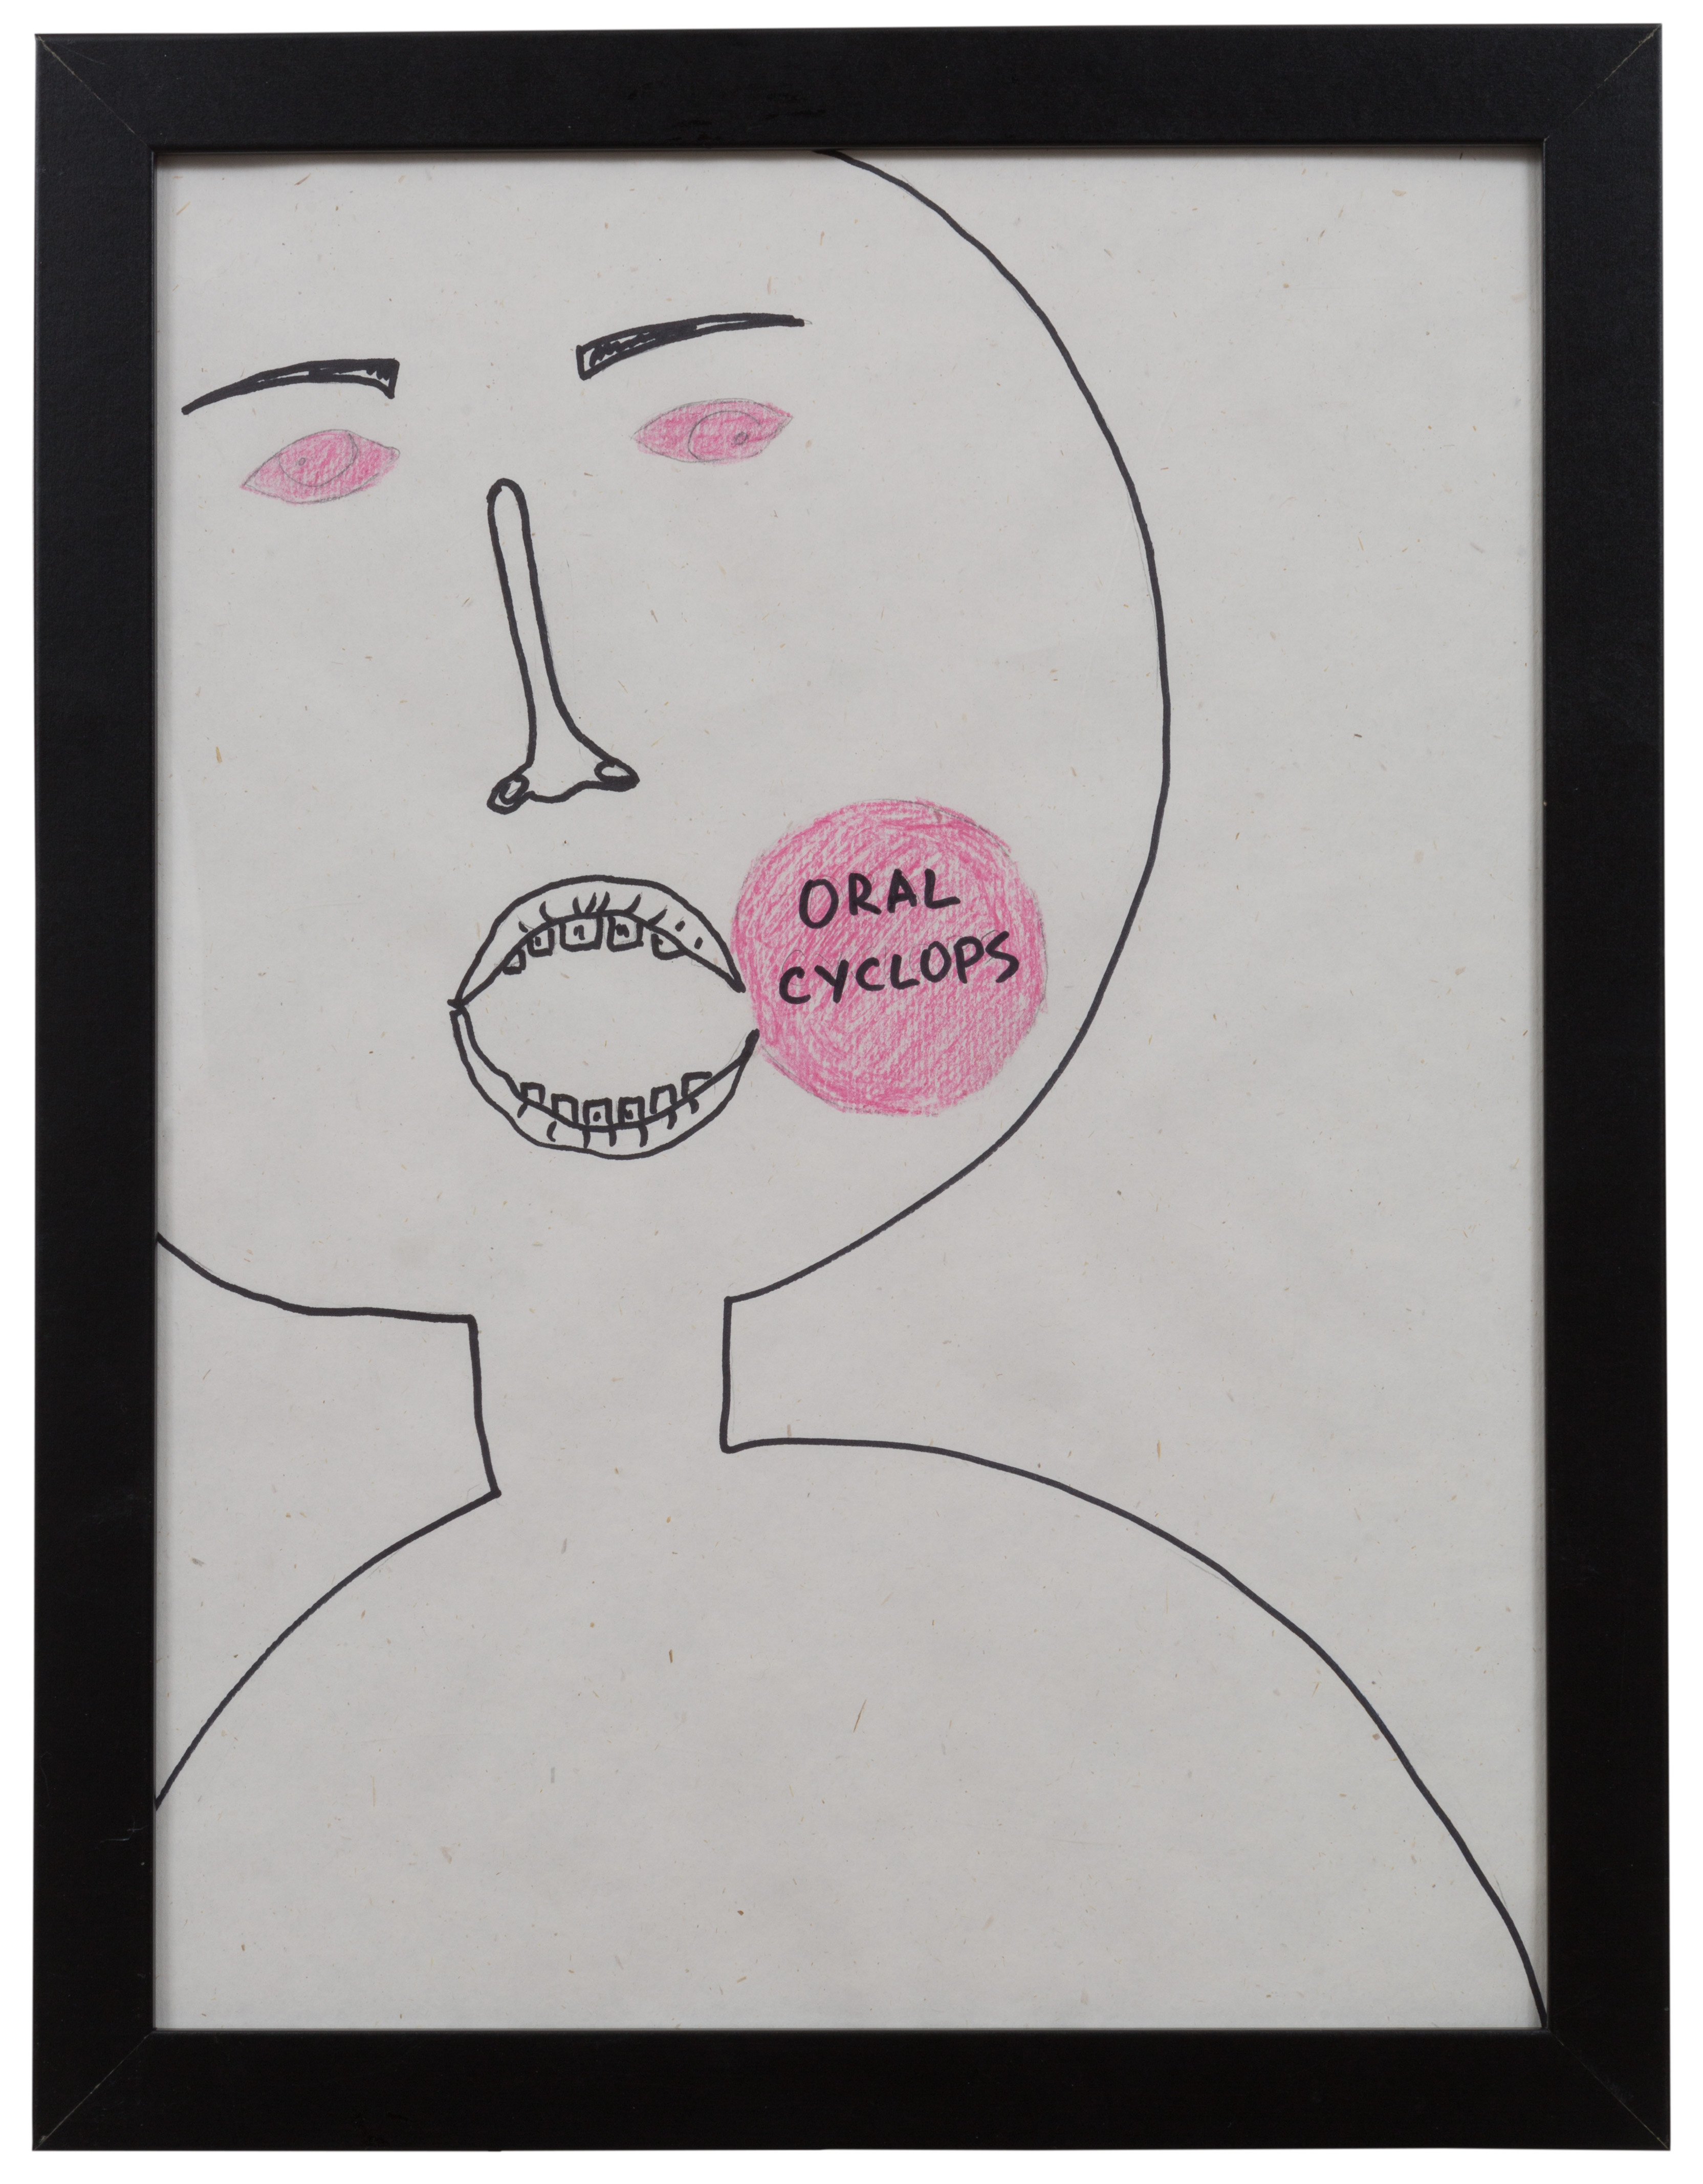 «Oral Cyclops»